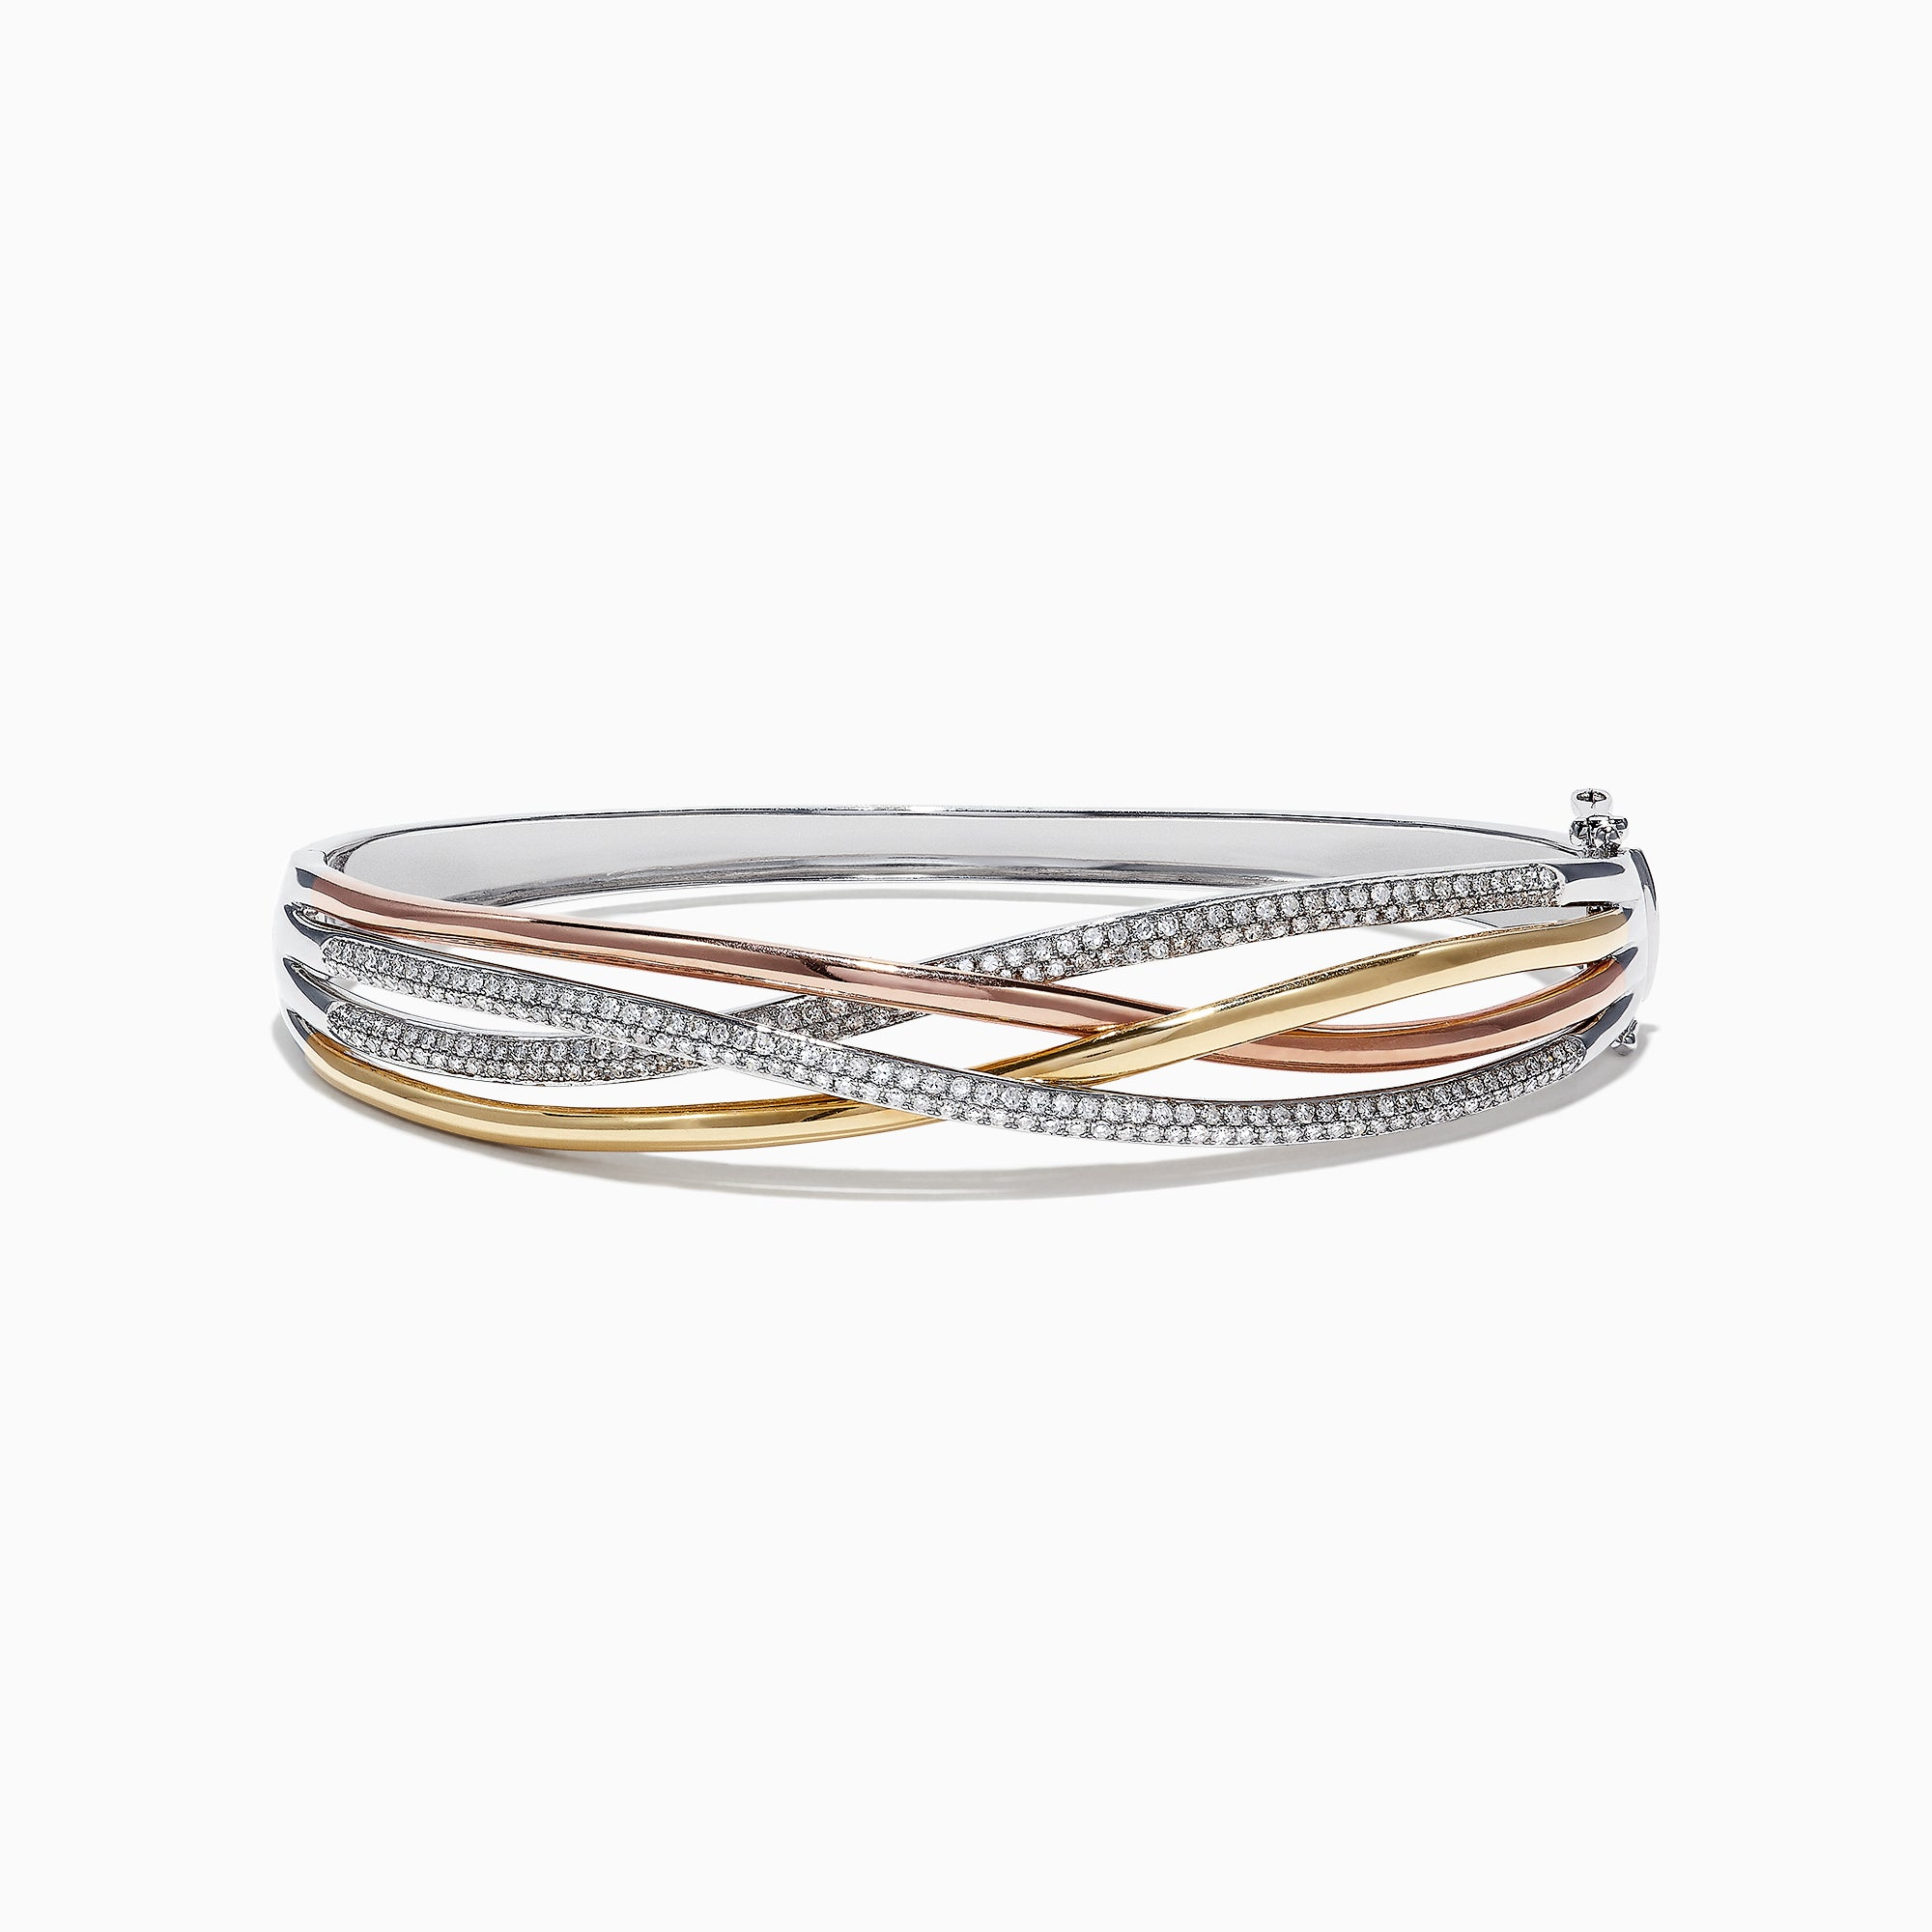 Effy Trio 14K Tri-Color Gold Diamond Bangle, 1.03 TCW